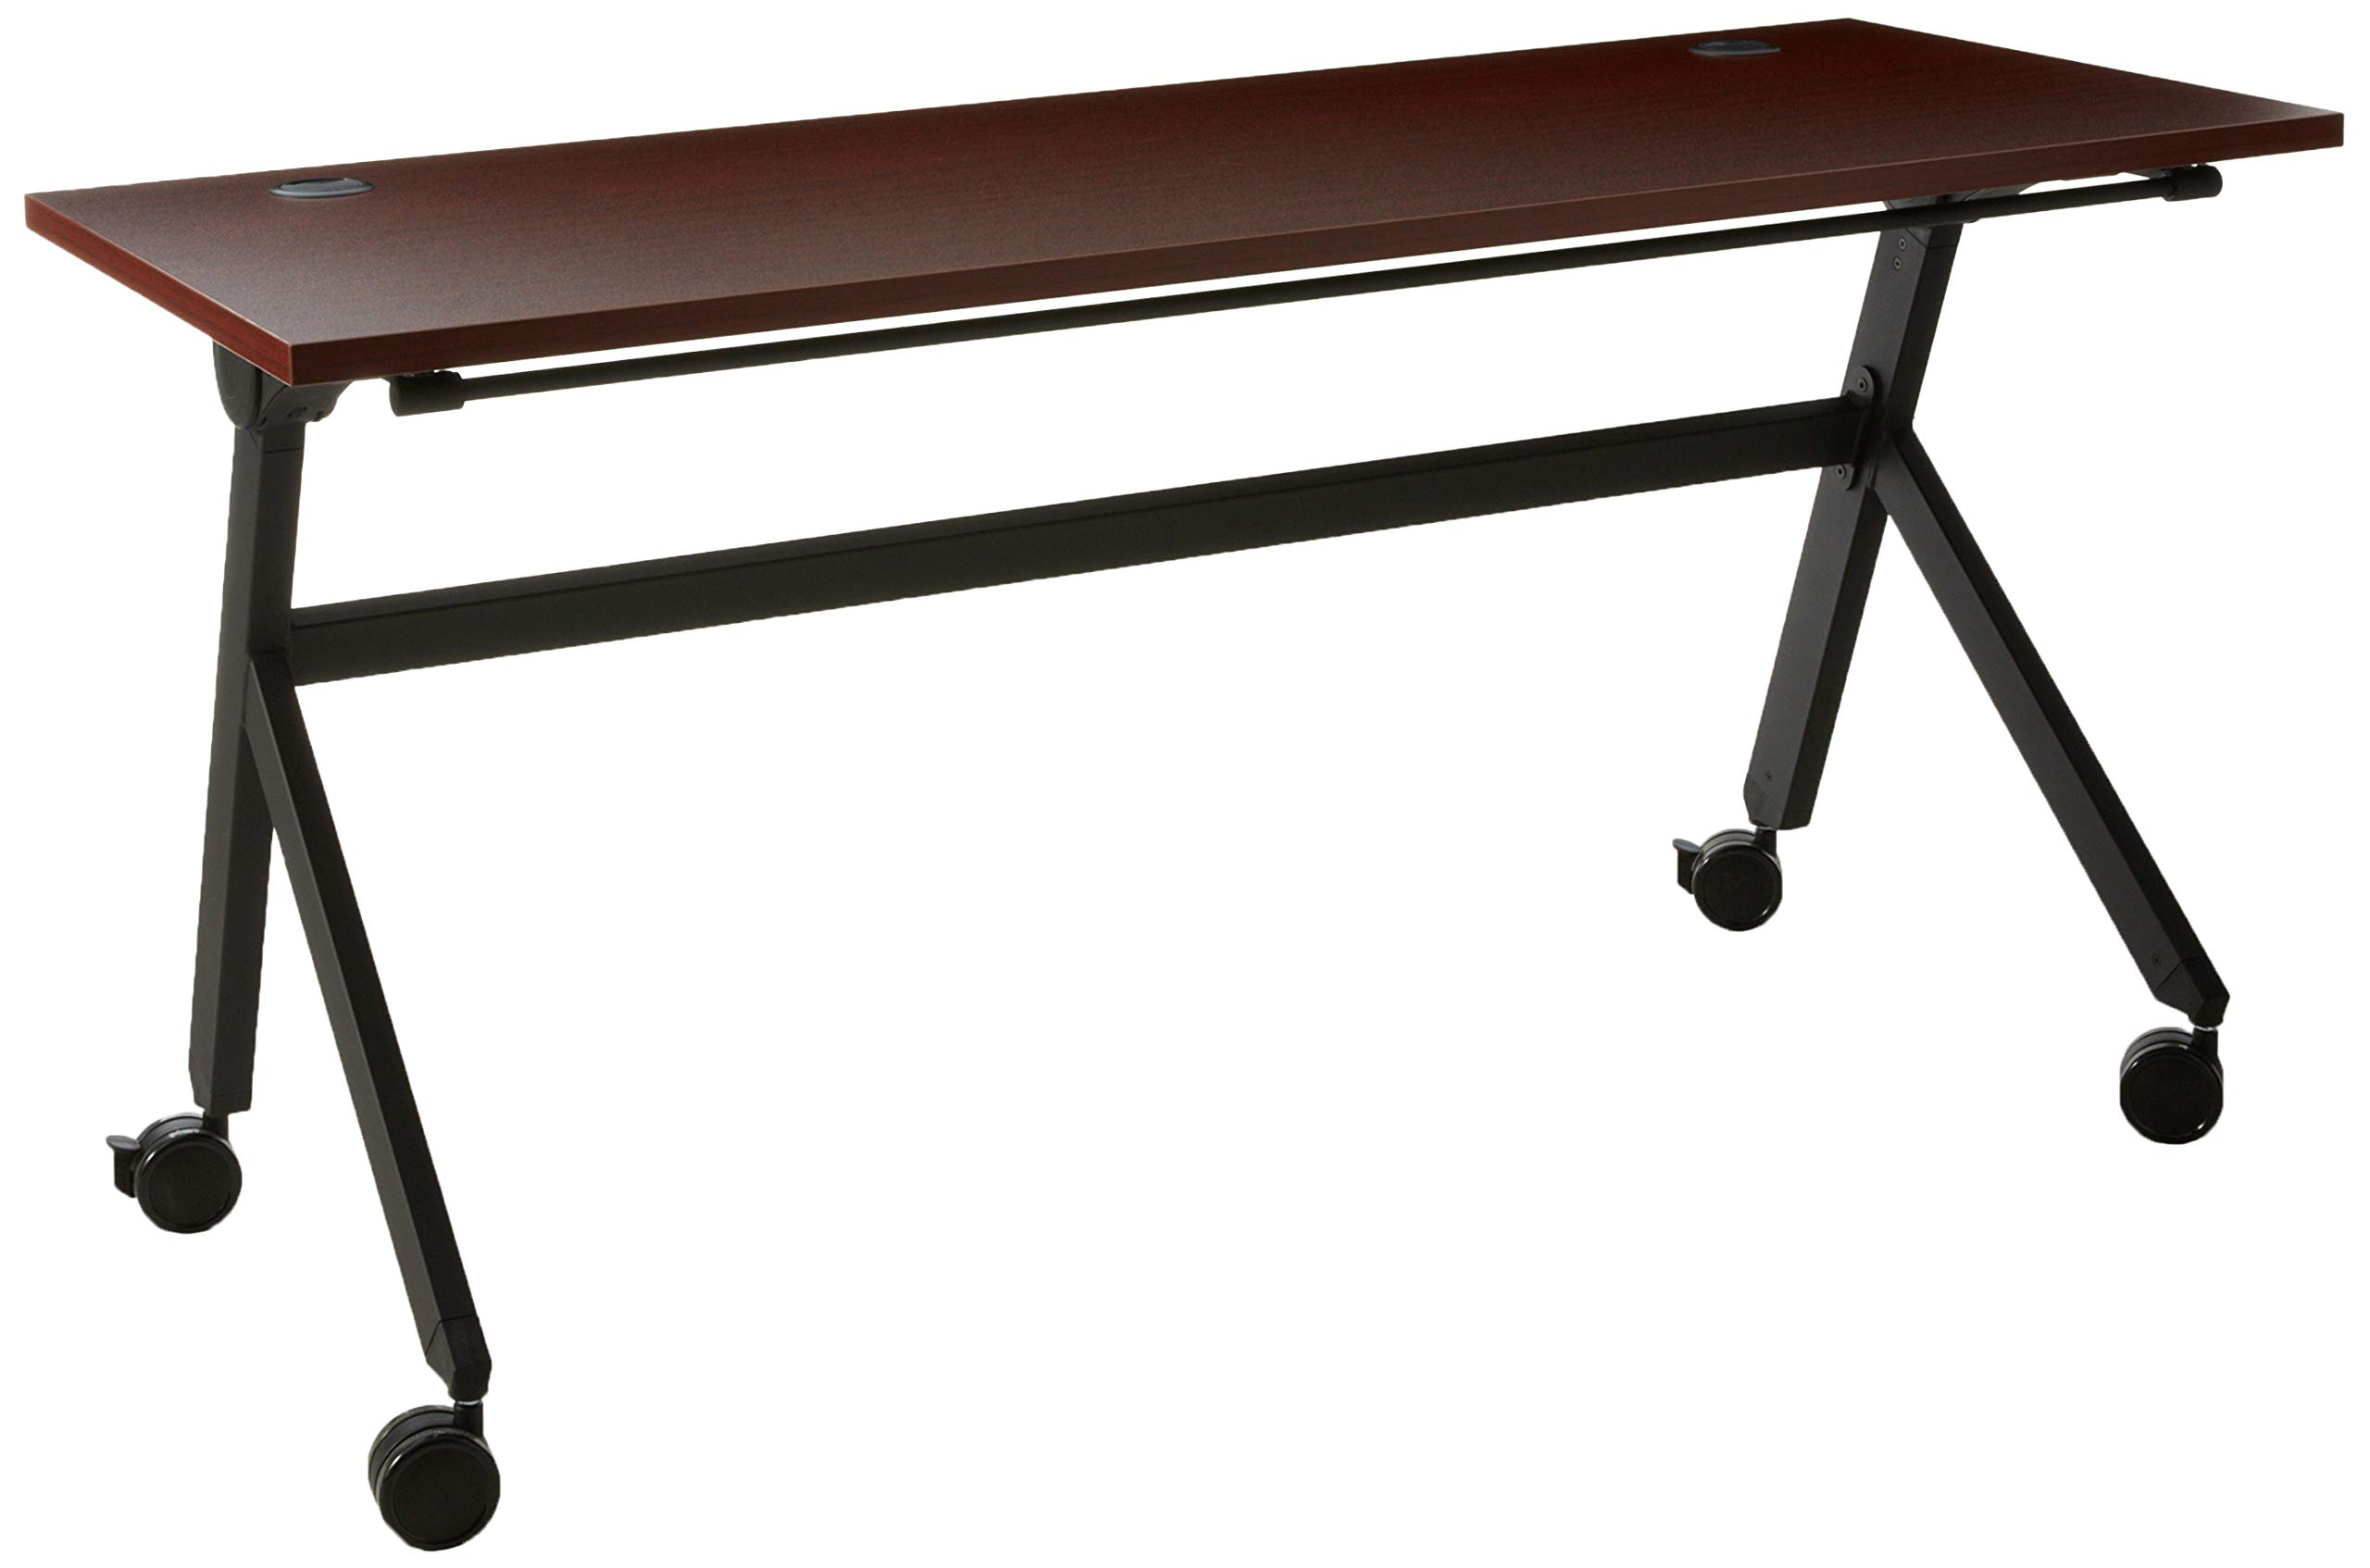 HON Assemble Flip Base Multi-Purpose Table, 60-Inch, Chestnut/Black by HON